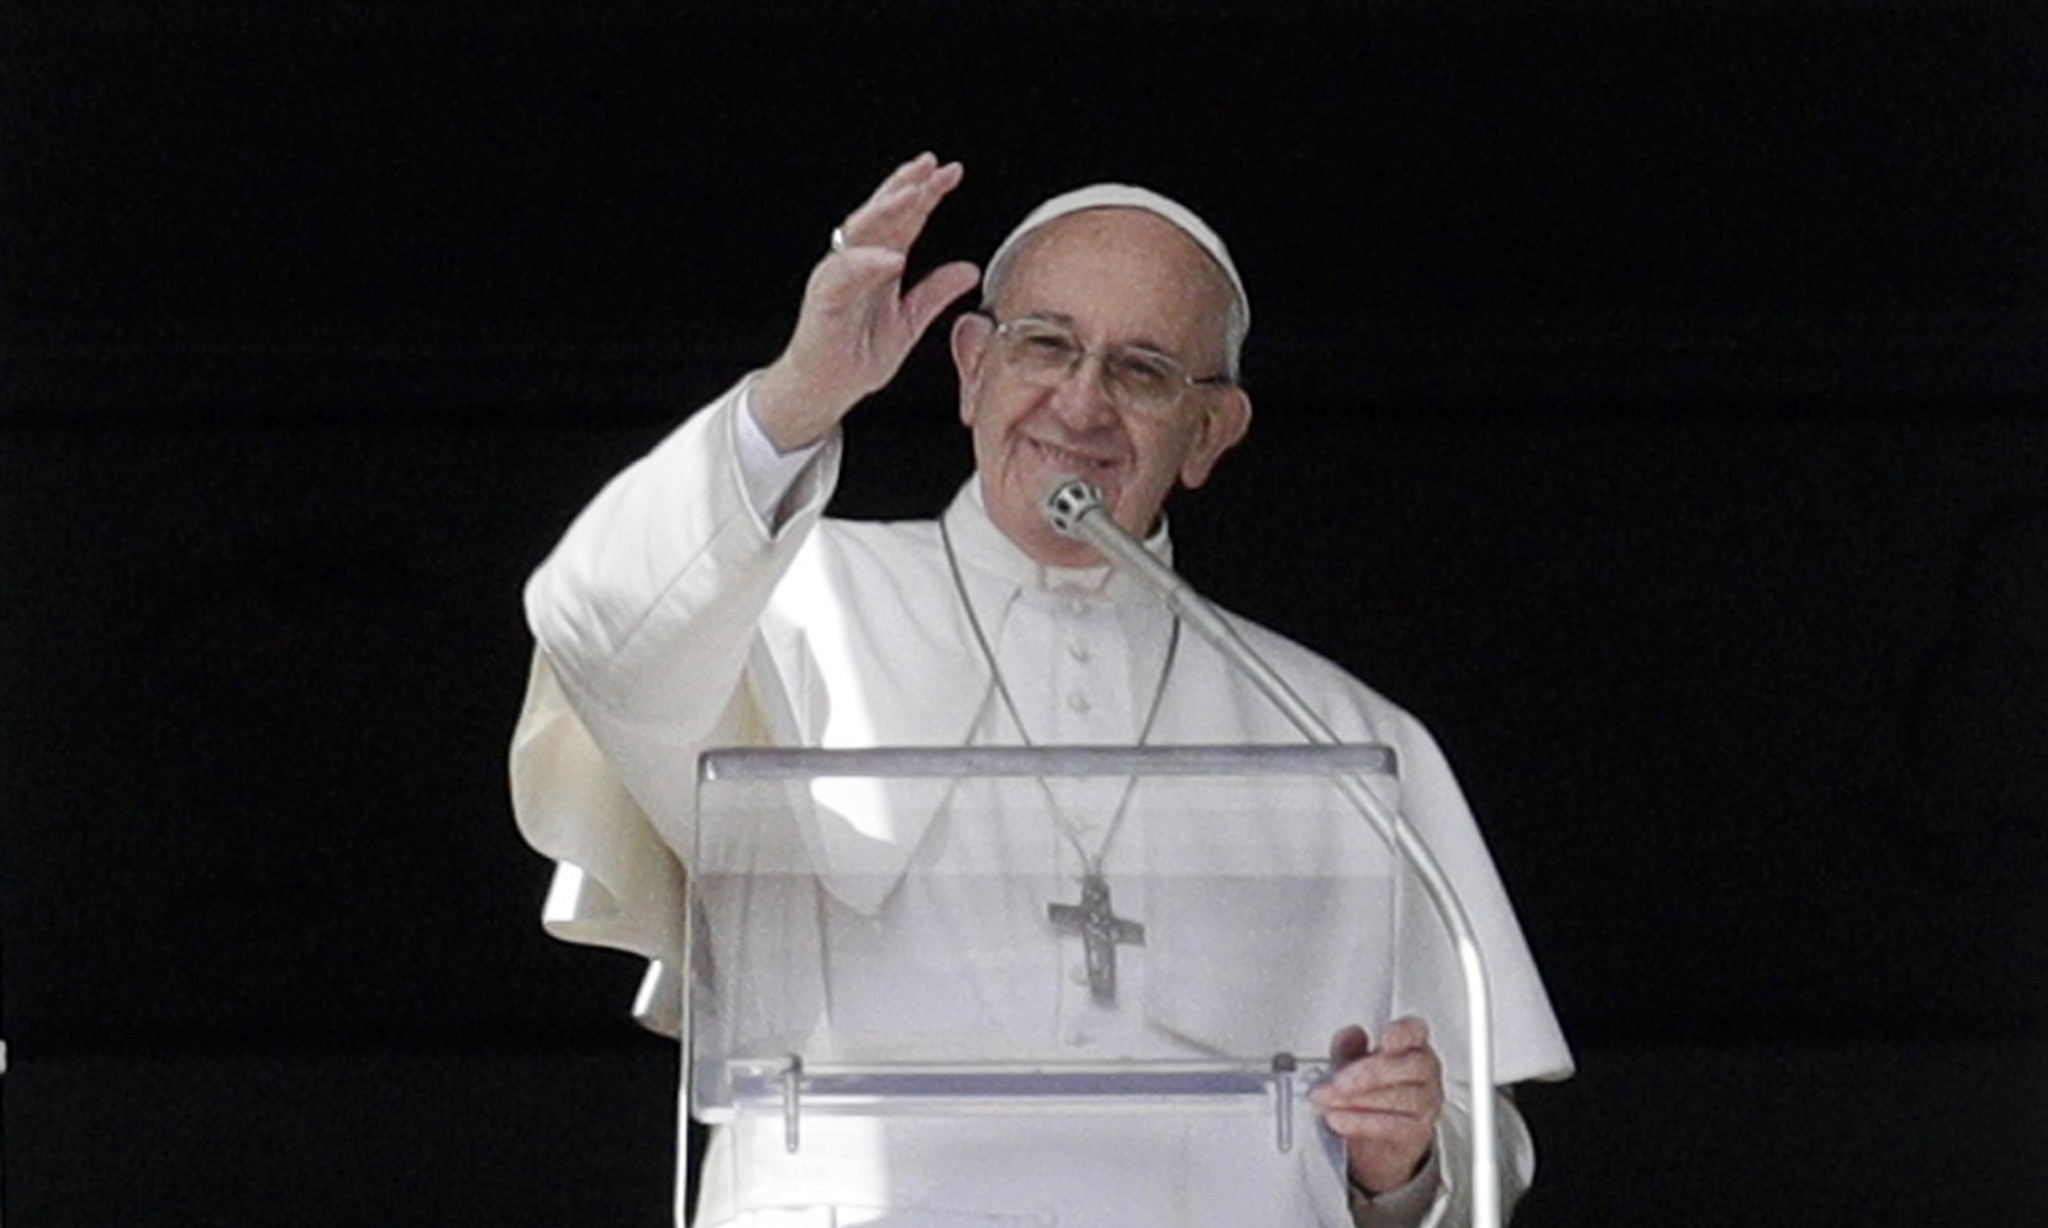 Pope Francis: married men could be ordained to ease priest shortages